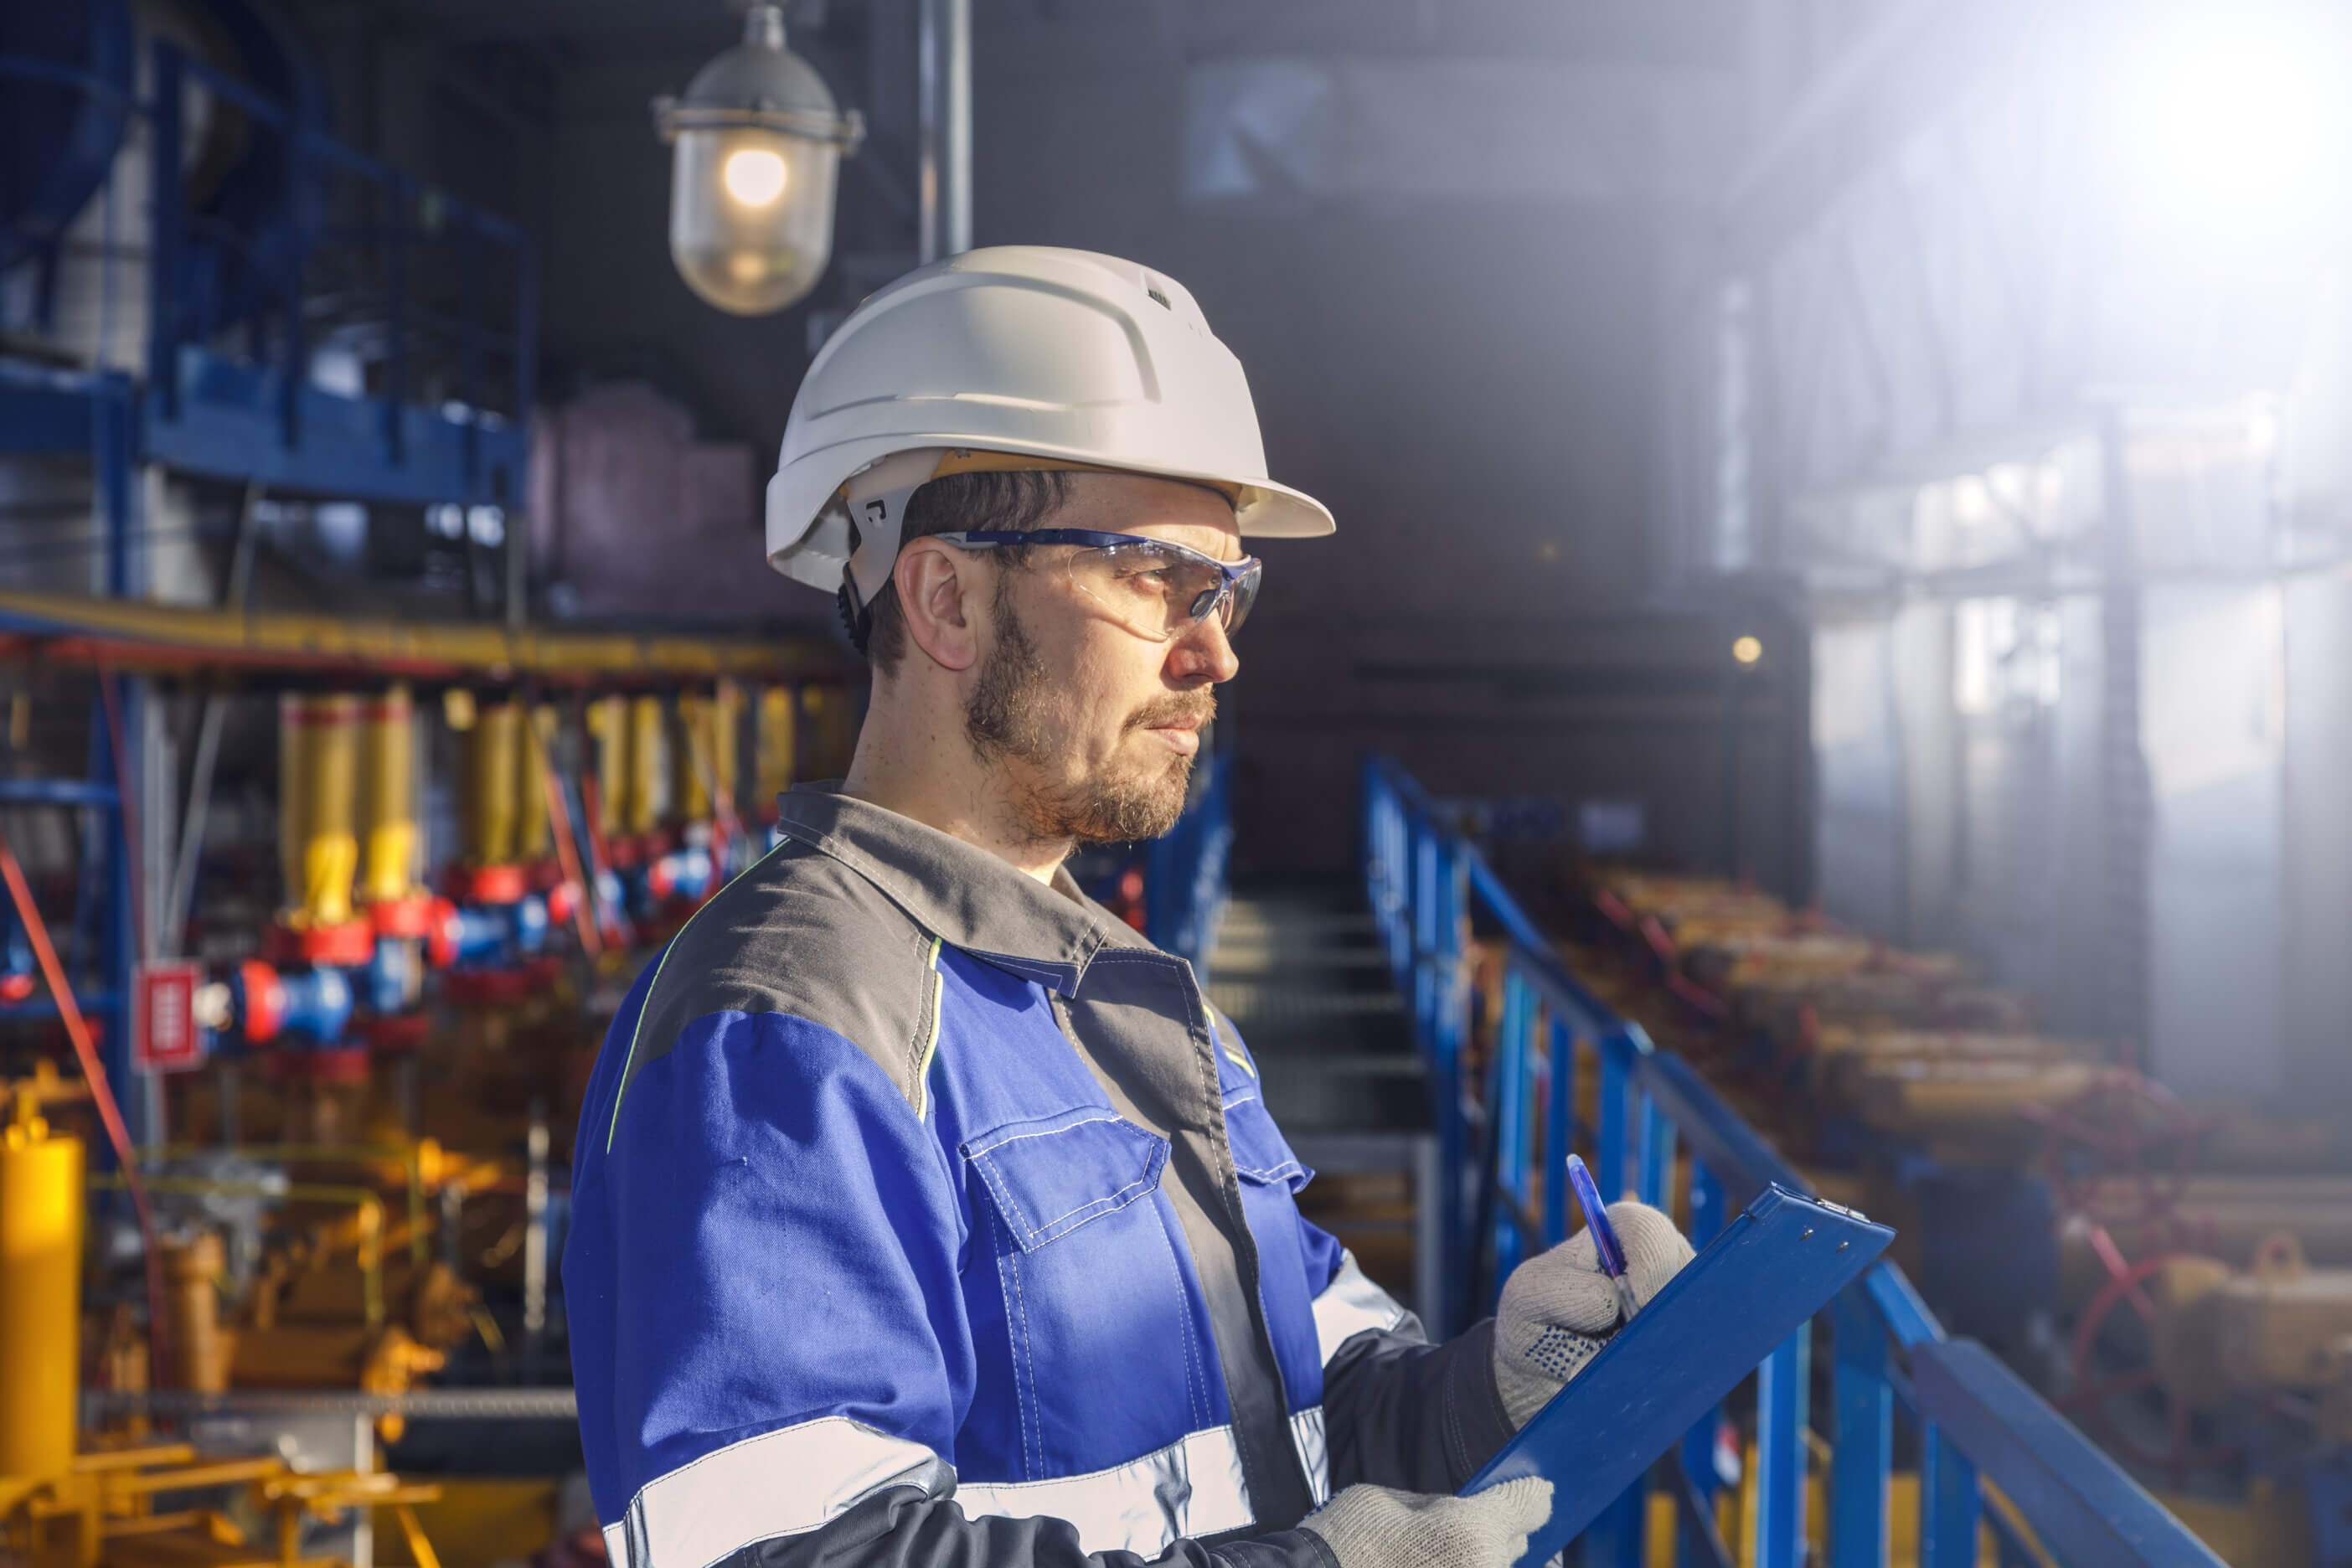 maintenance man in blue uniform and hard hat looking off into distance. Photo